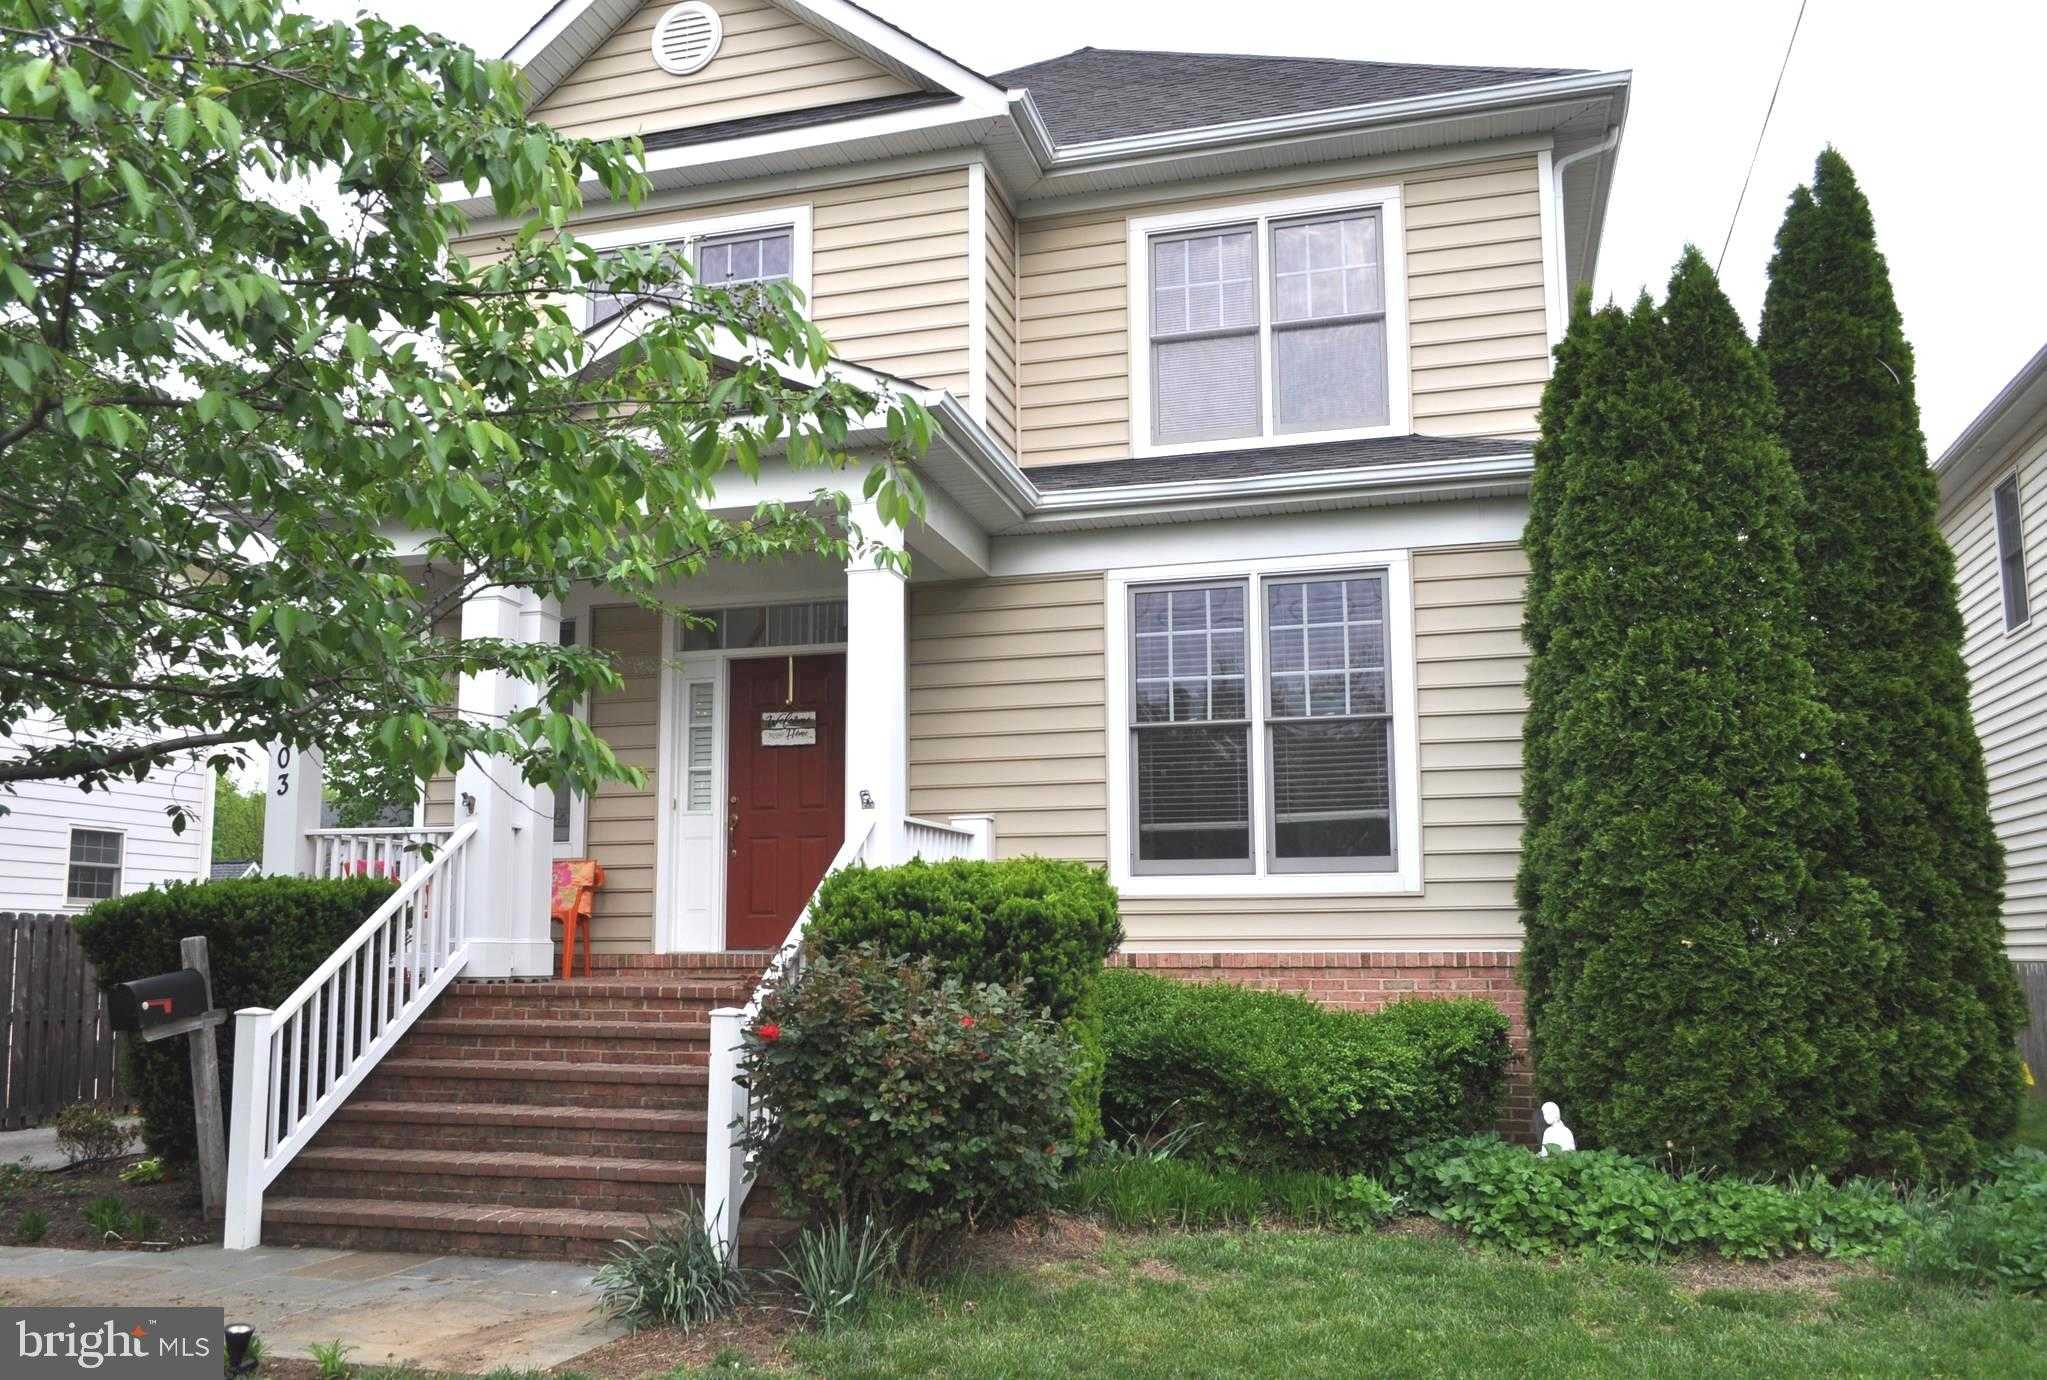 $930,000 - 5Br/4Ba -  for Sale in Douglas Park, Arlington